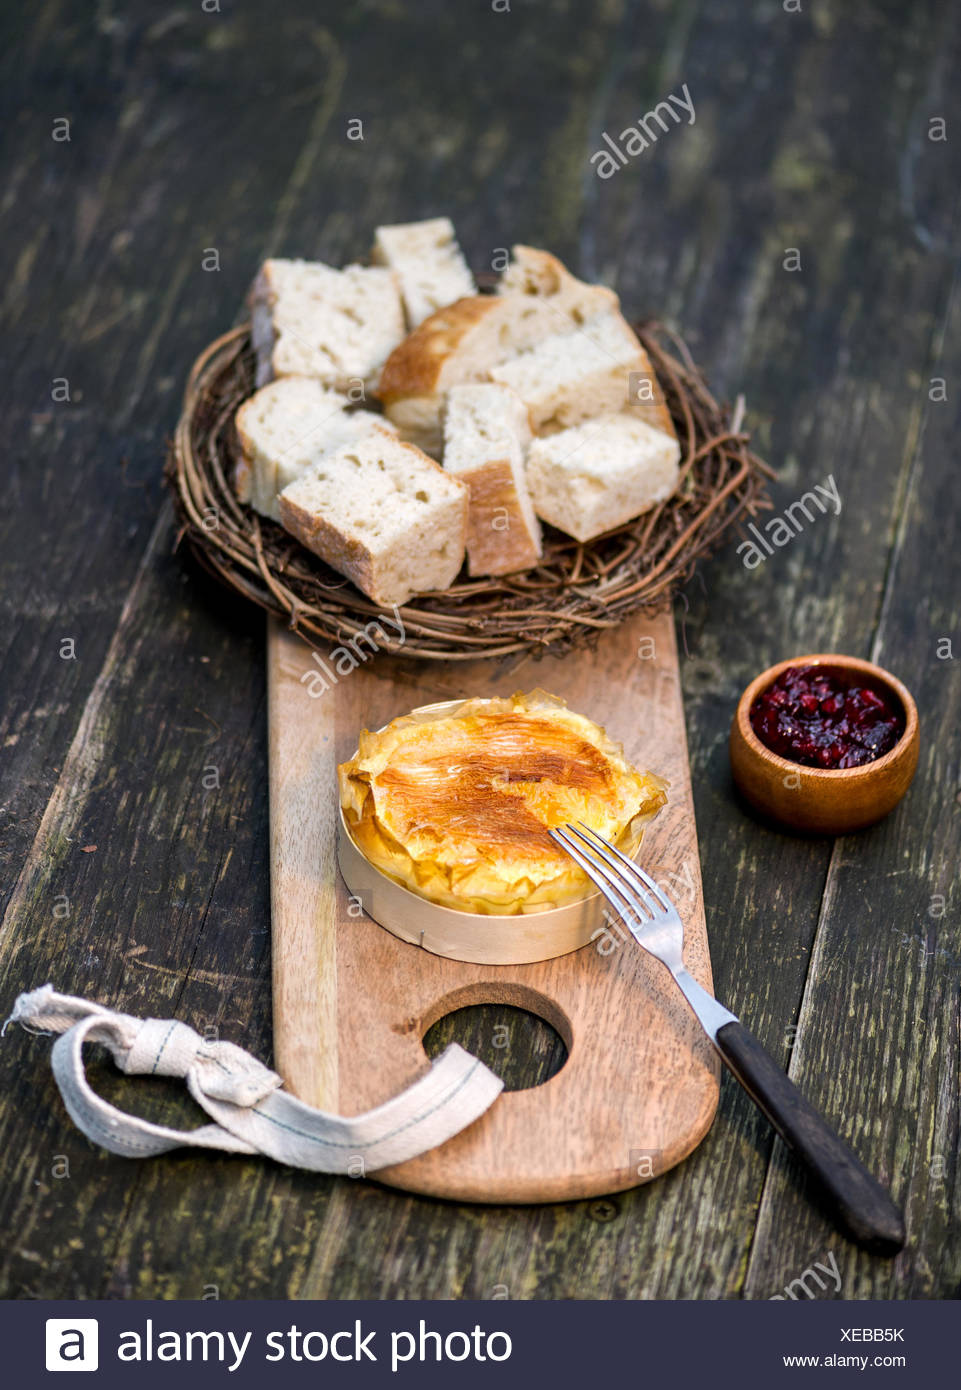 Camembert, served with a bread basket and cranberries - Stock Image